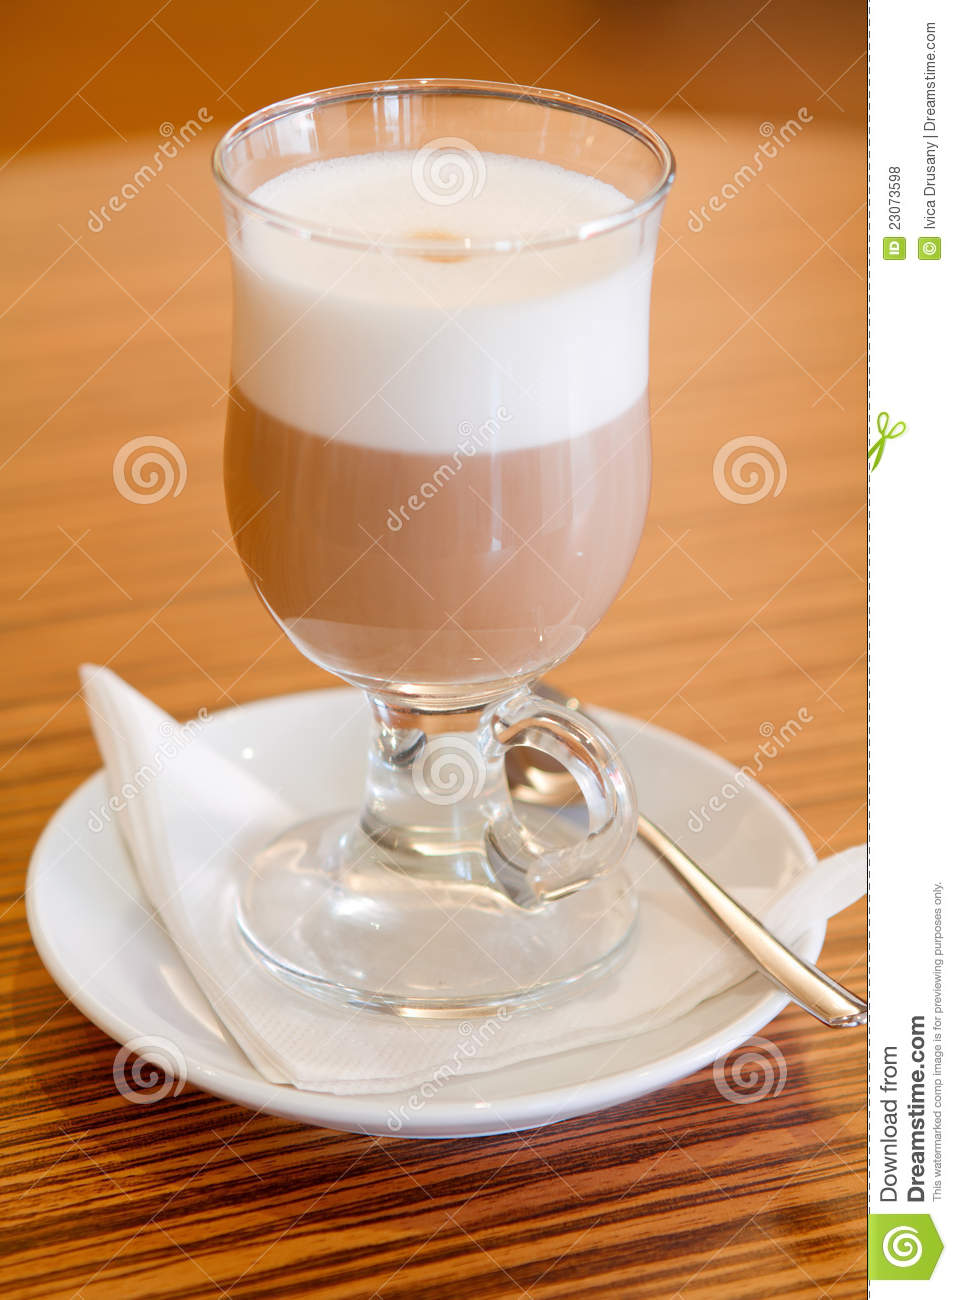 Caffe Latte Served In A Glass Royalty Free Stock Photos - Image: 23073598